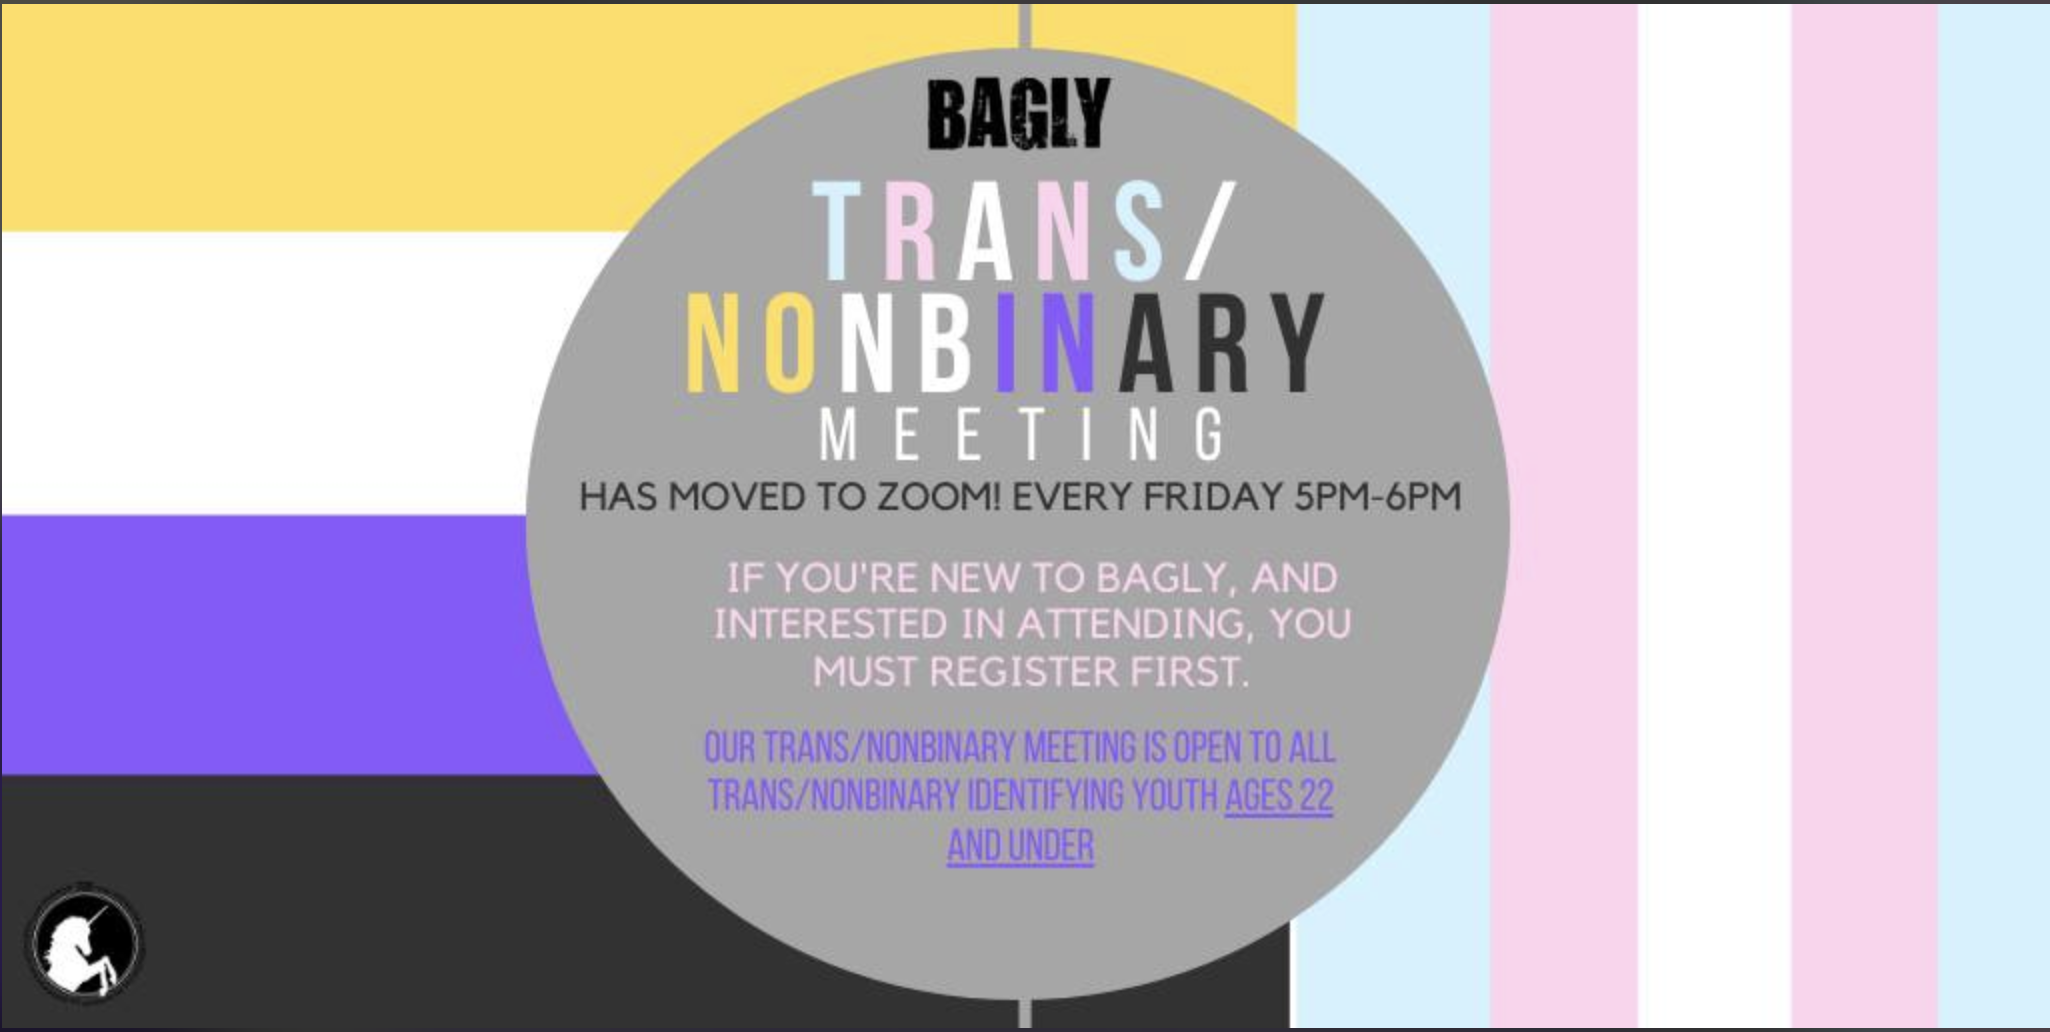 BAGLY Trans/Nonbinary Meeting